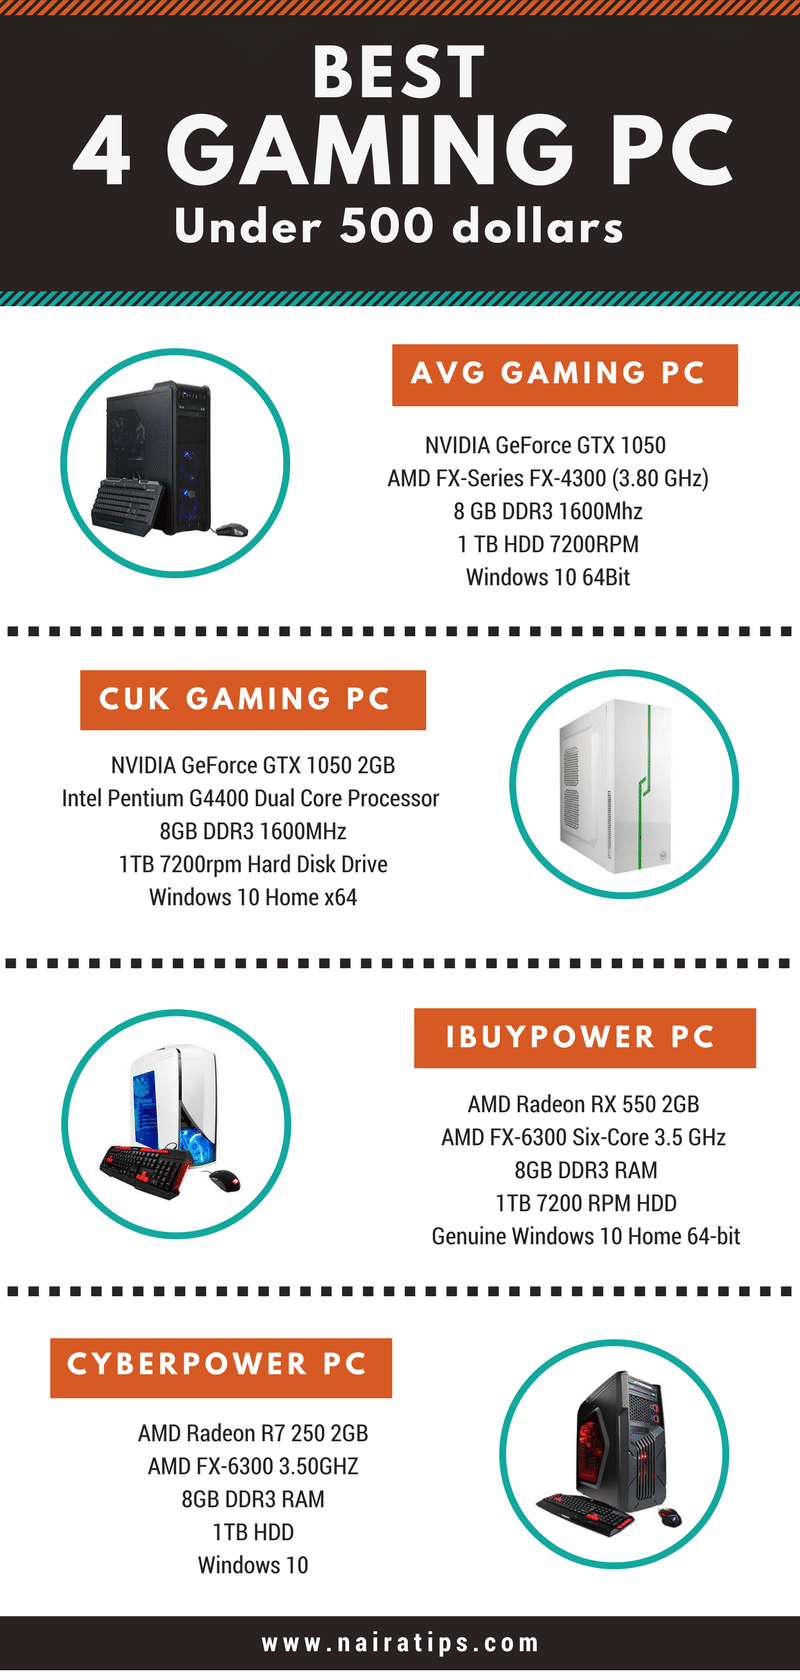 the 4 best gaming pc under 500 dollars 2018 edition nairatips